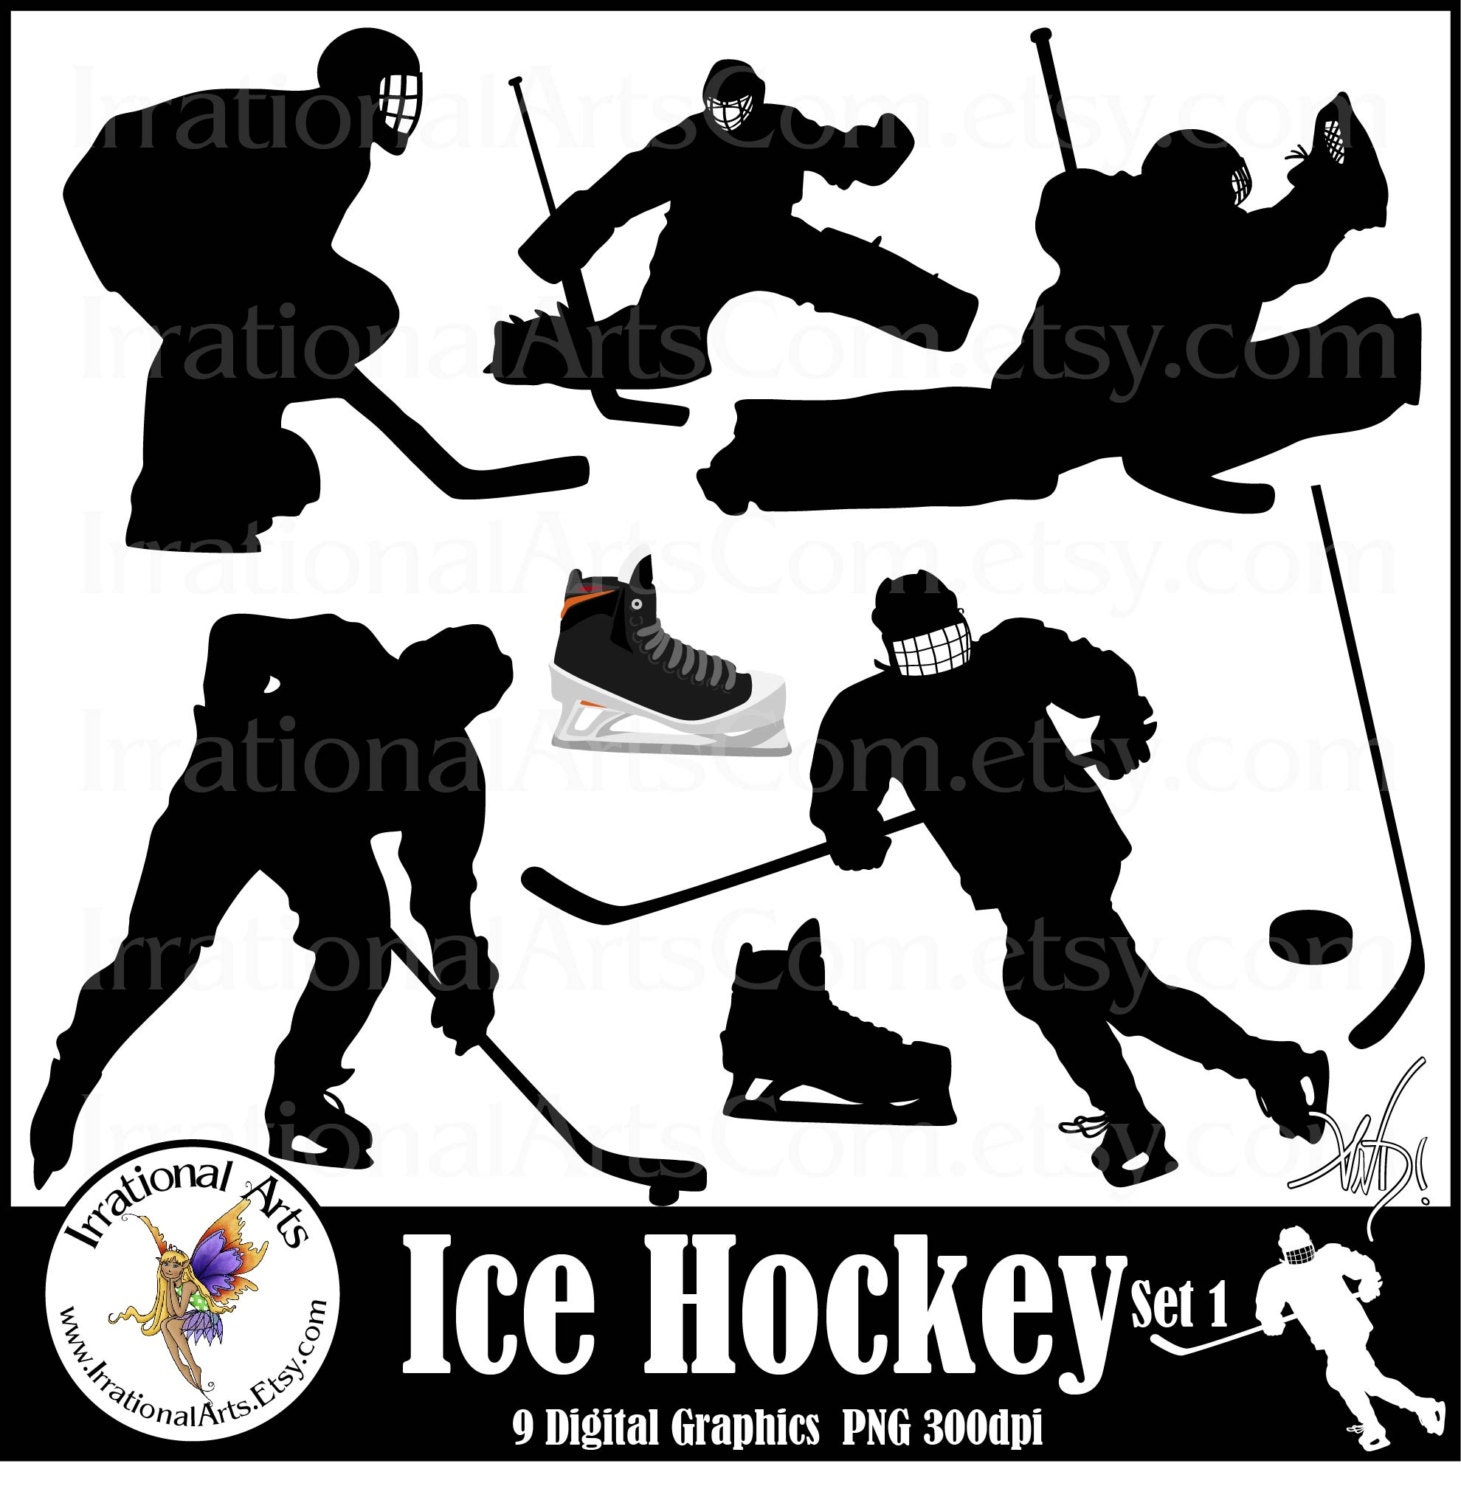 Ice Hockey Set 1 9 Png Silhouettes Digital Clipart Graphics Etsy